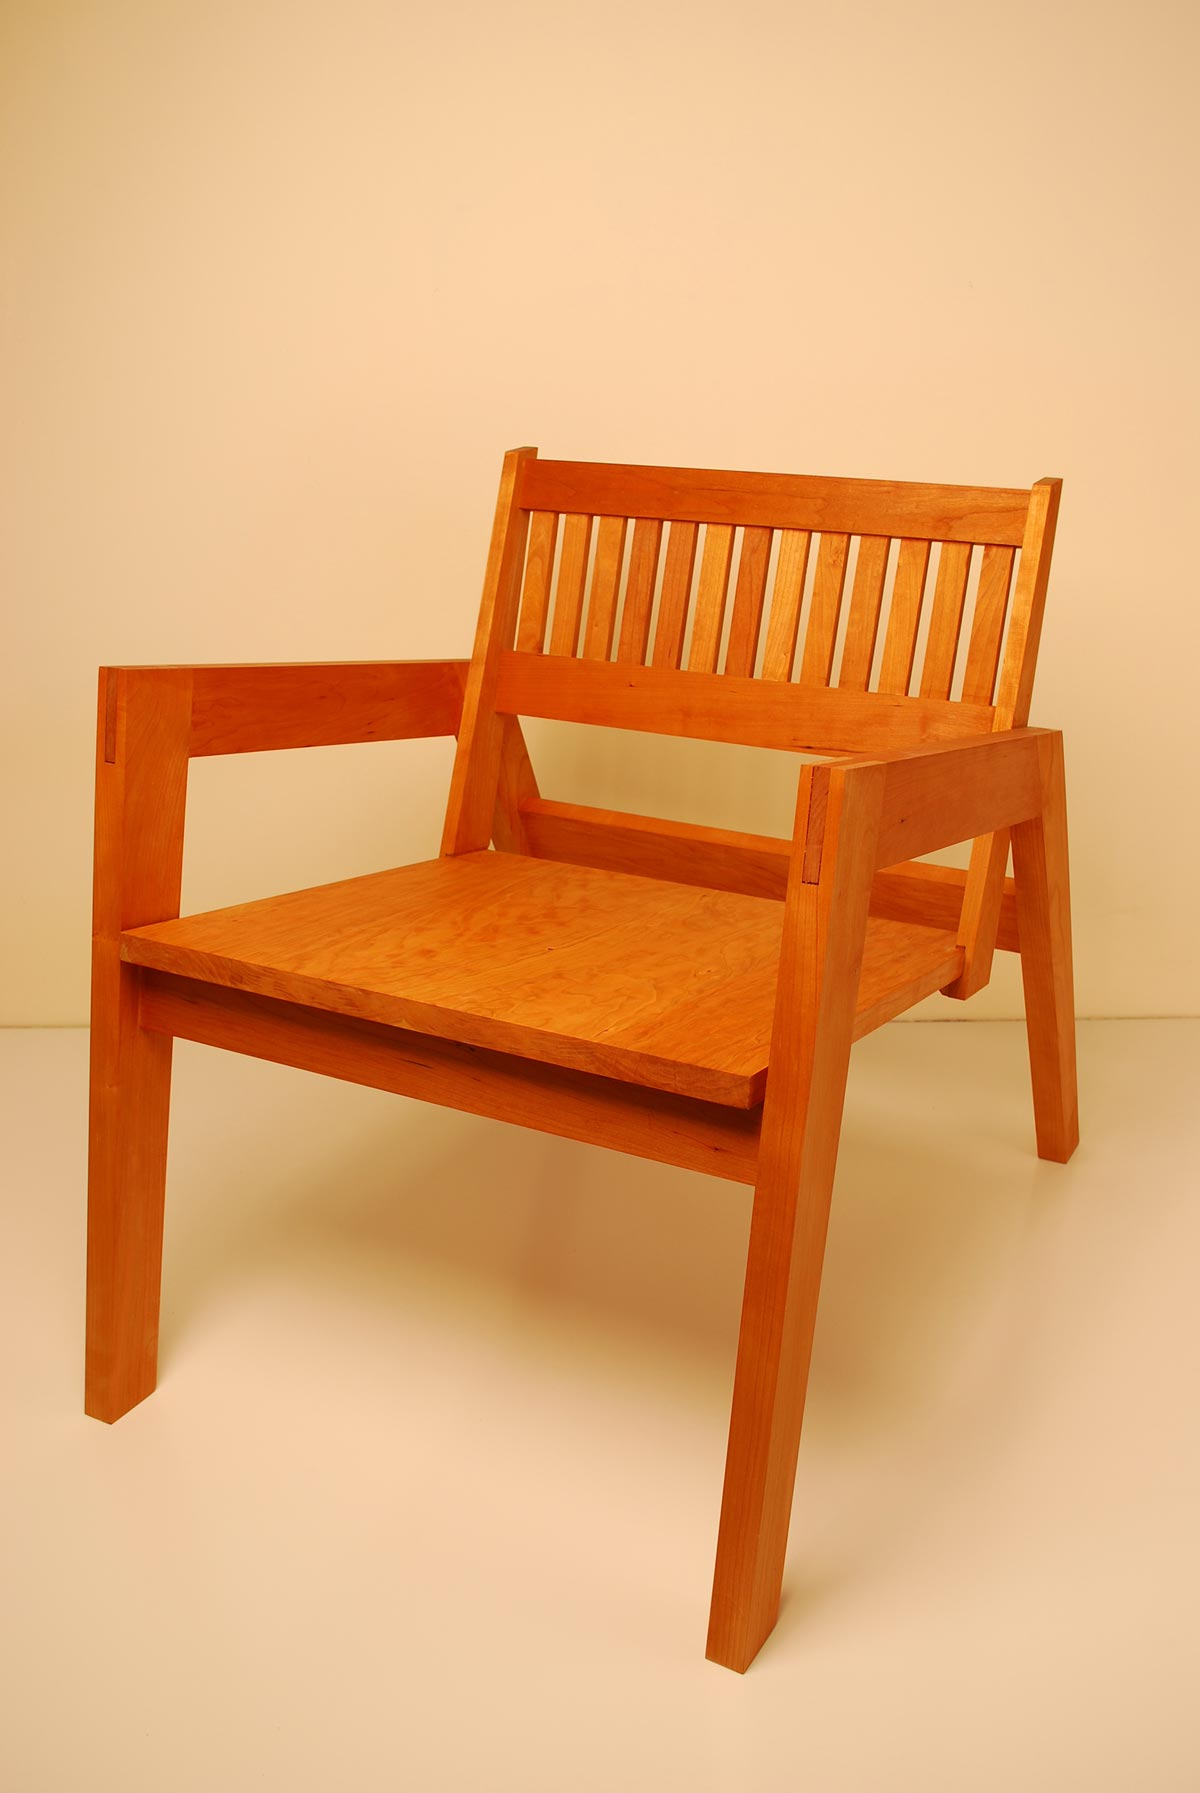 Art 4990 | Chair Art: 9